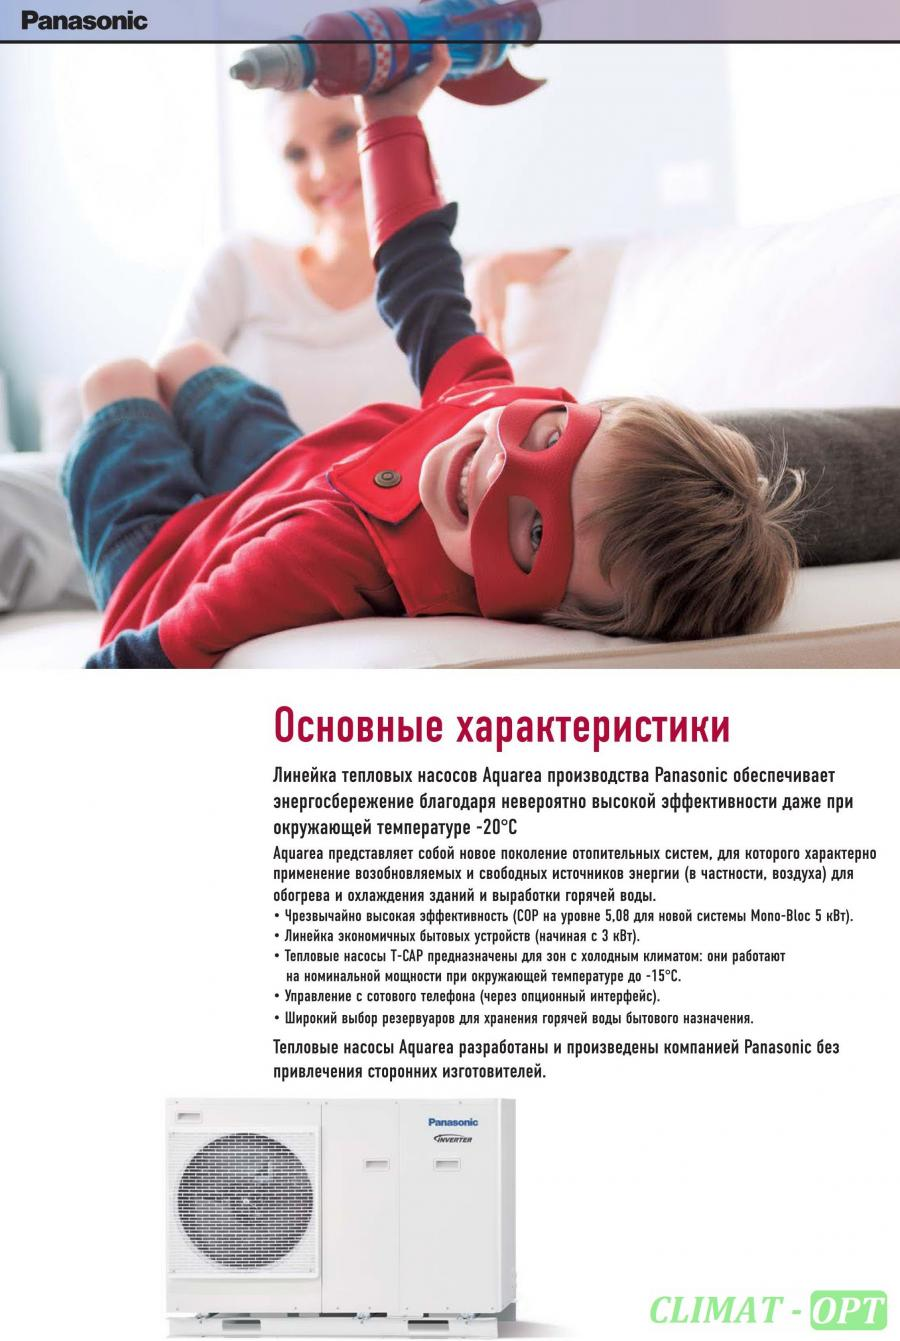 Тепловой насос Panasonic Aquarea T-CAP. bi-block с одним гидромодулем